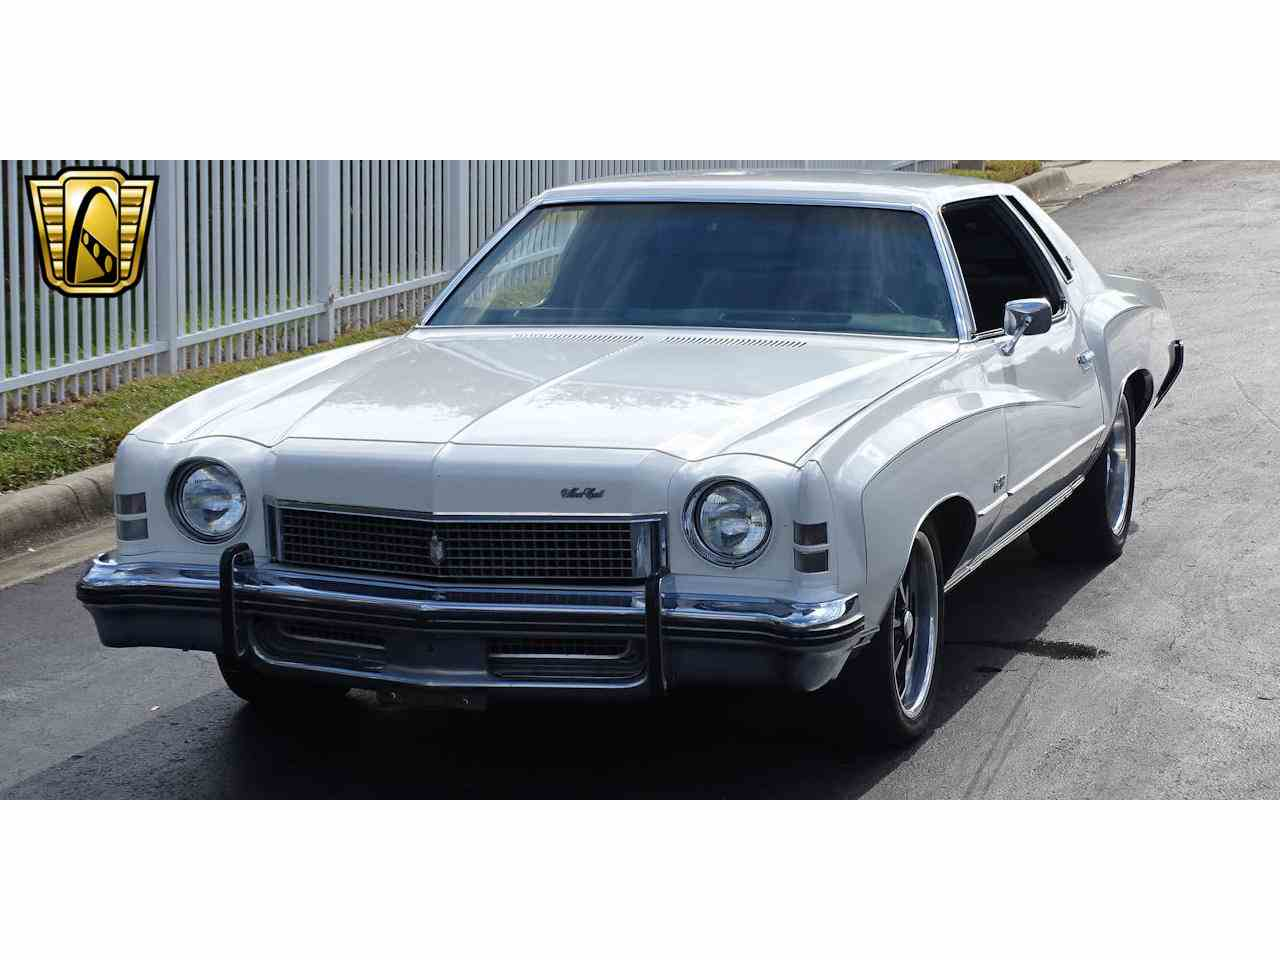 Large Picture of '73 Chevrolet Monte Carlo located in Florida - $12,595.00 - ME5G